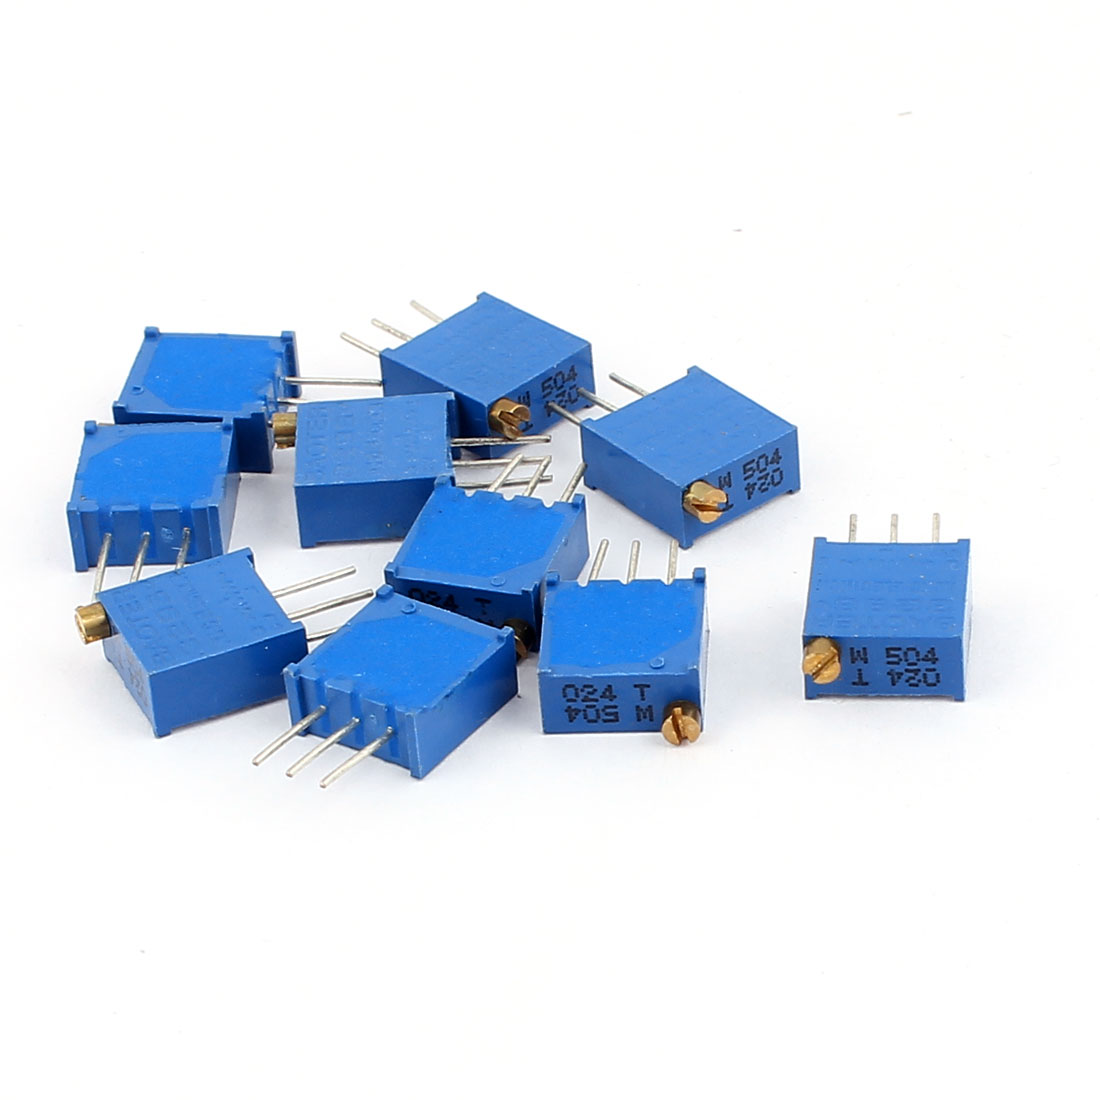 10 Pcs 3296W 500K ohm Multiturn Potentiometer Pot Variable Resistor